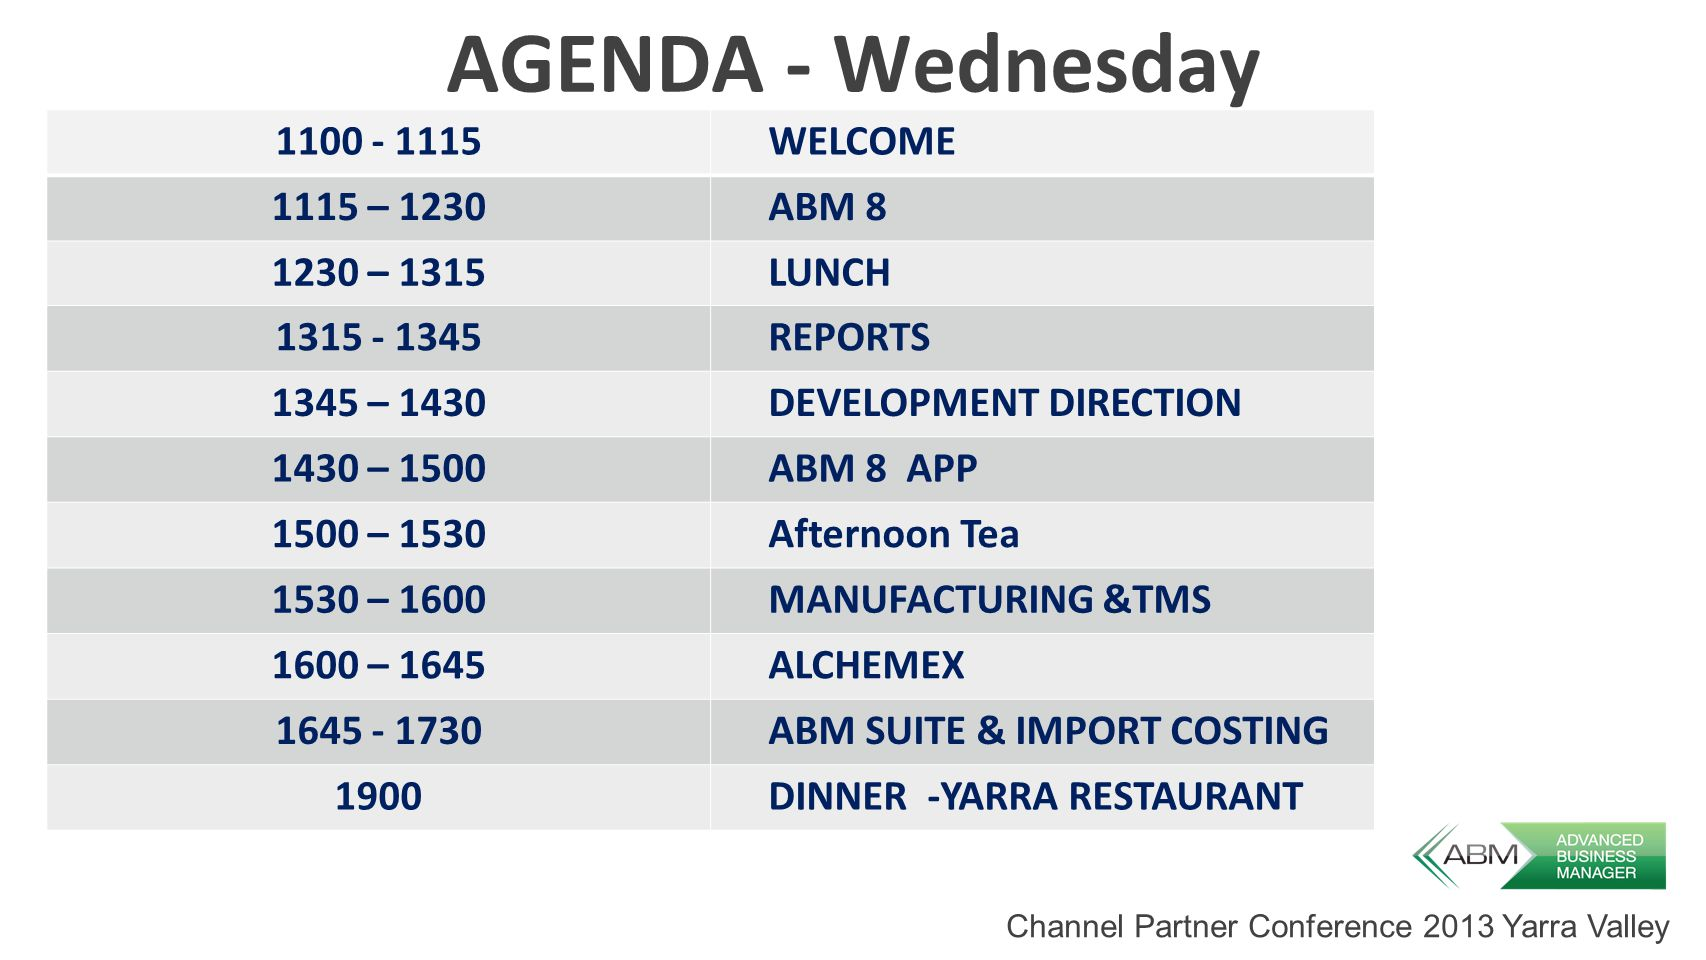 AGENDA - Wednesday 1100 - 1115WELCOME 1115 – 1230ABM 8 1230 – 1315LUNCH 1315 - 1345REPORTS 1345 – 1430DEVELOPMENT DIRECTION 1430 – 1500ABM 8 APP 1500 – 1530Afternoon Tea 1530 – 1600MANUFACTURING &TMS 1600 – 1645ALCHEMEX 1645 - 1730ABM SUITE & IMPORT COSTING 1900DINNER -YARRA RESTAURANT